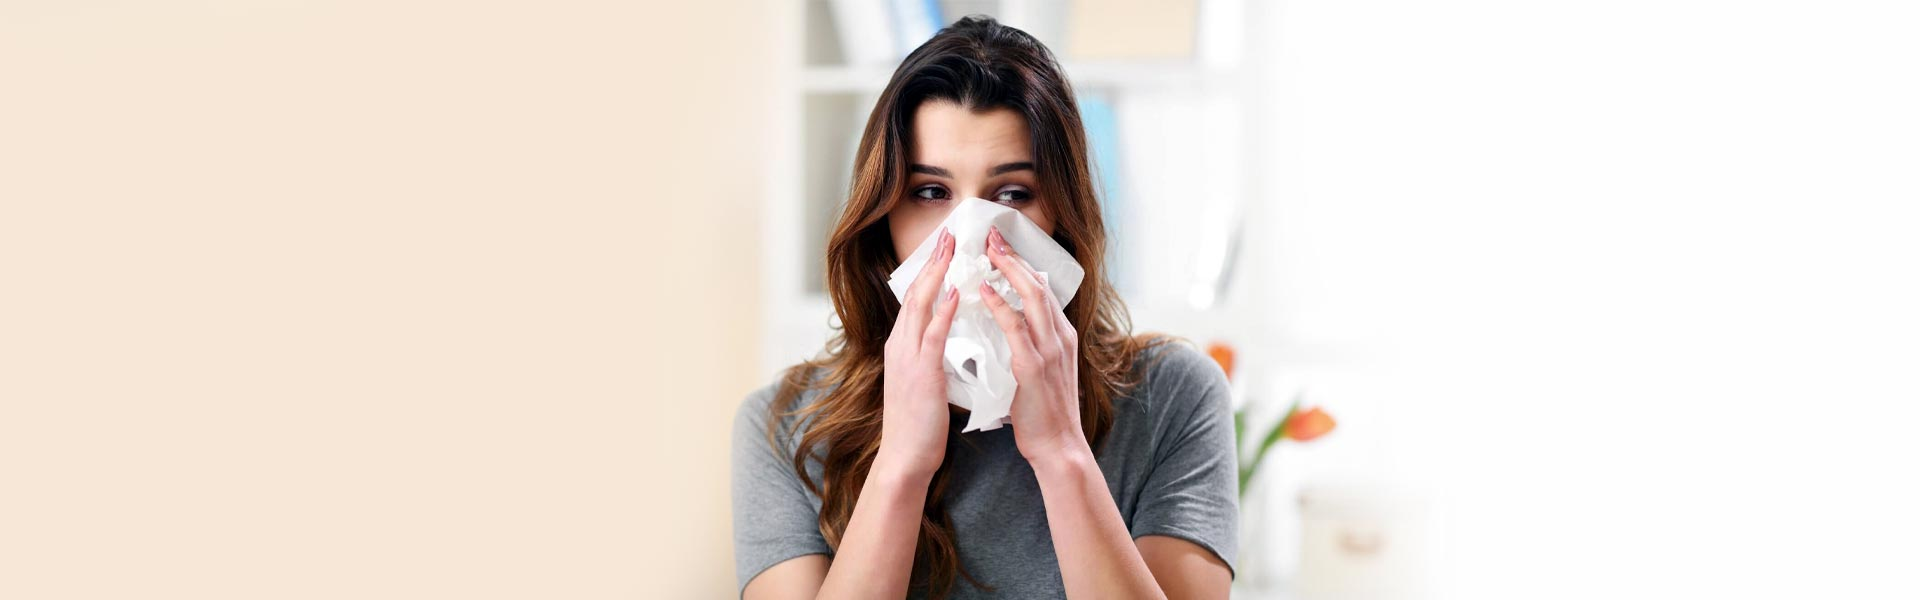 Diagnosis and Control of in-House Allergies During the COVID-19 Pandemic